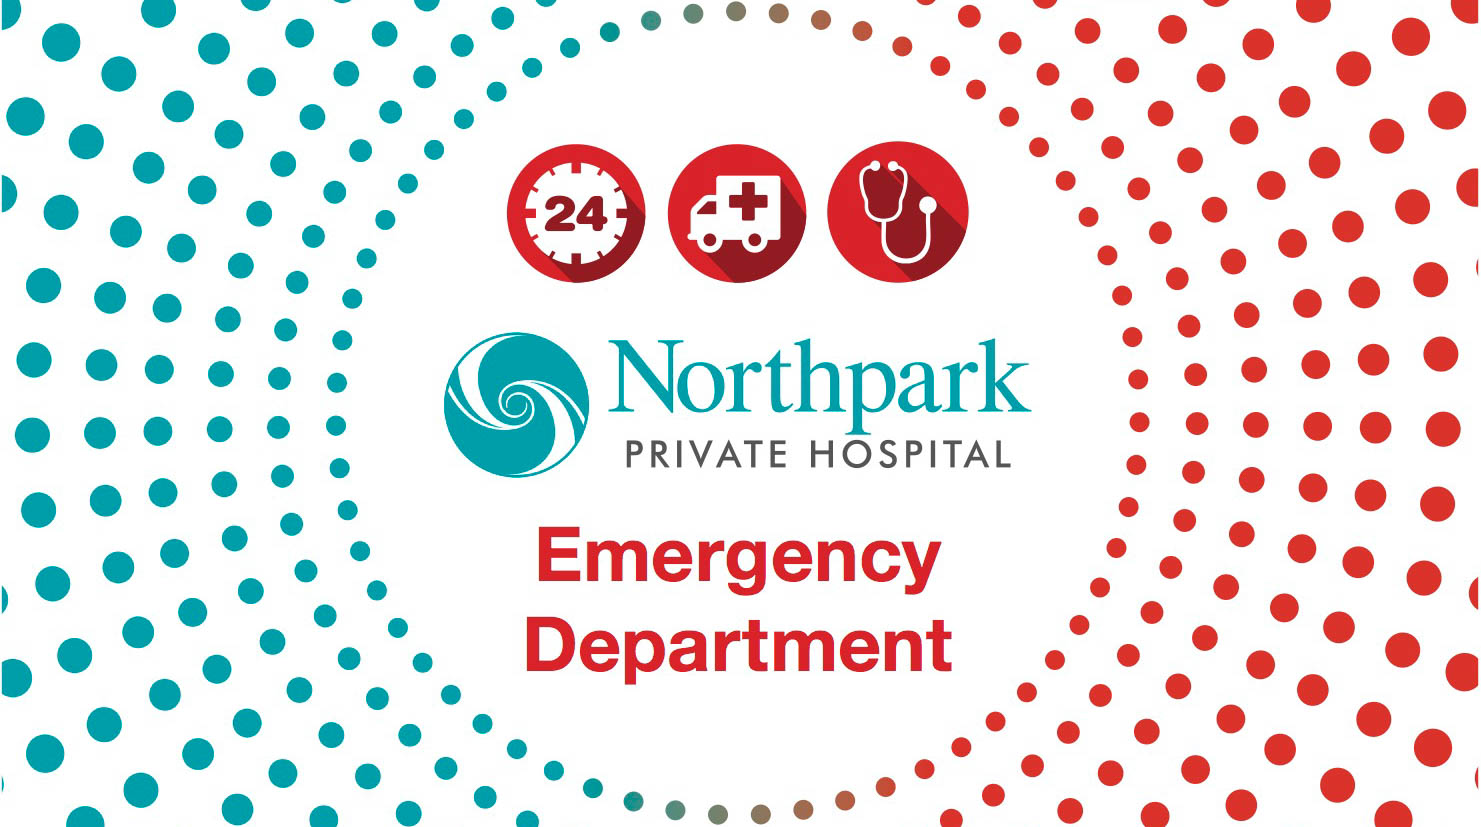 NorthparkPH_ED_LOGO [rectangle]